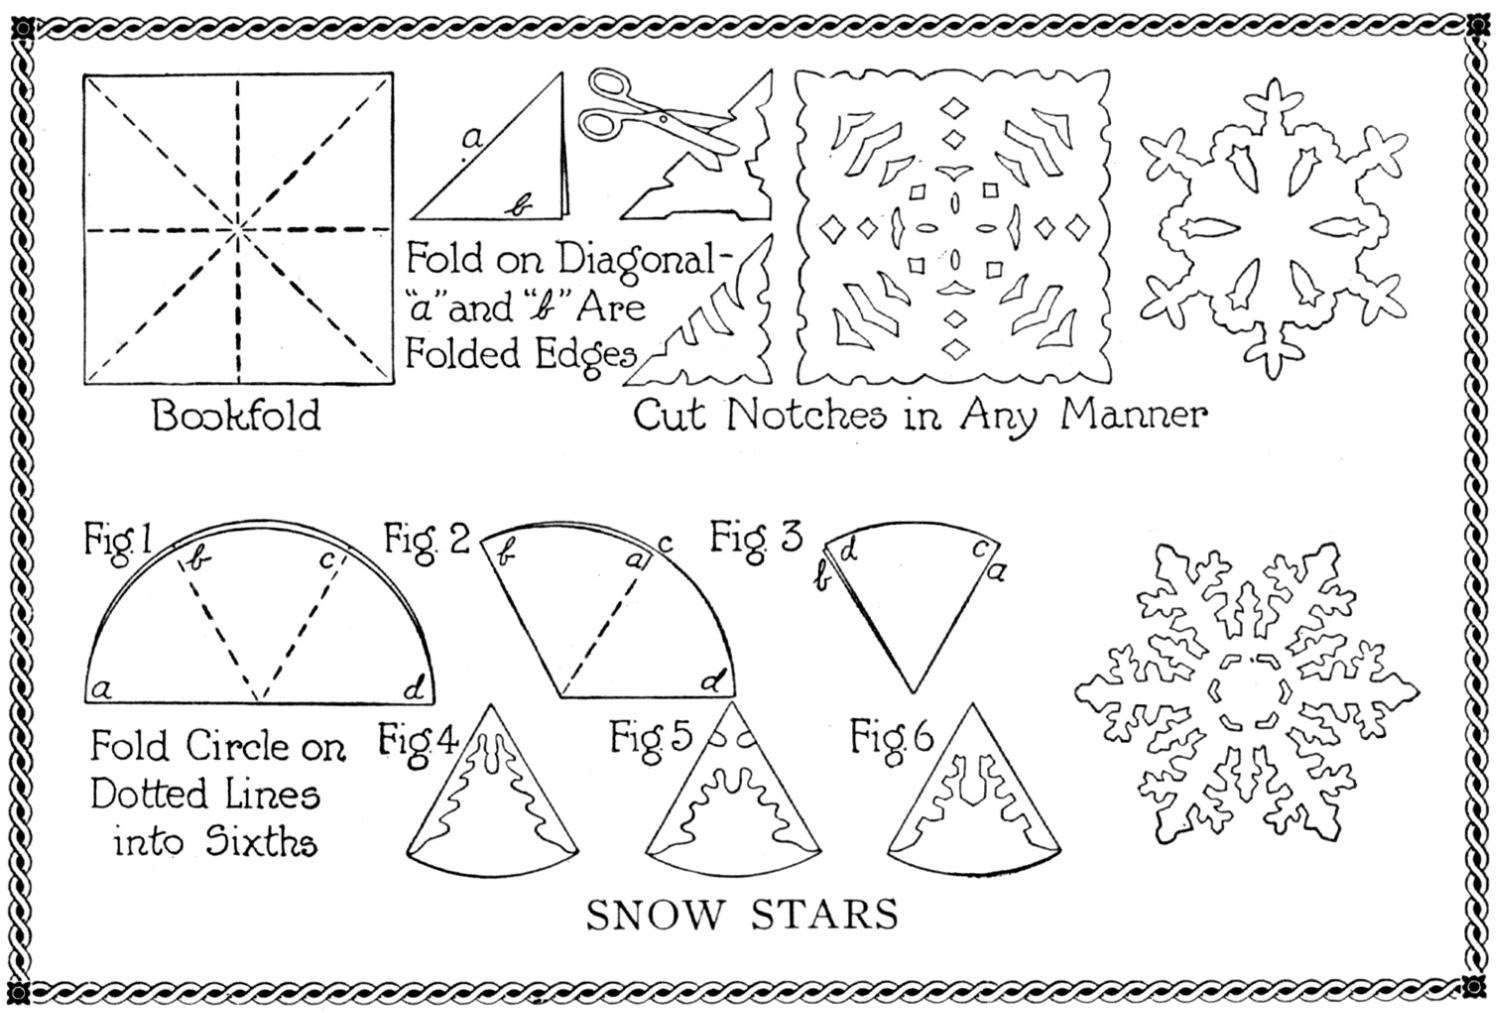 Crochet Snowflakes Free Patterns Printable | Search Results | Calendar ...